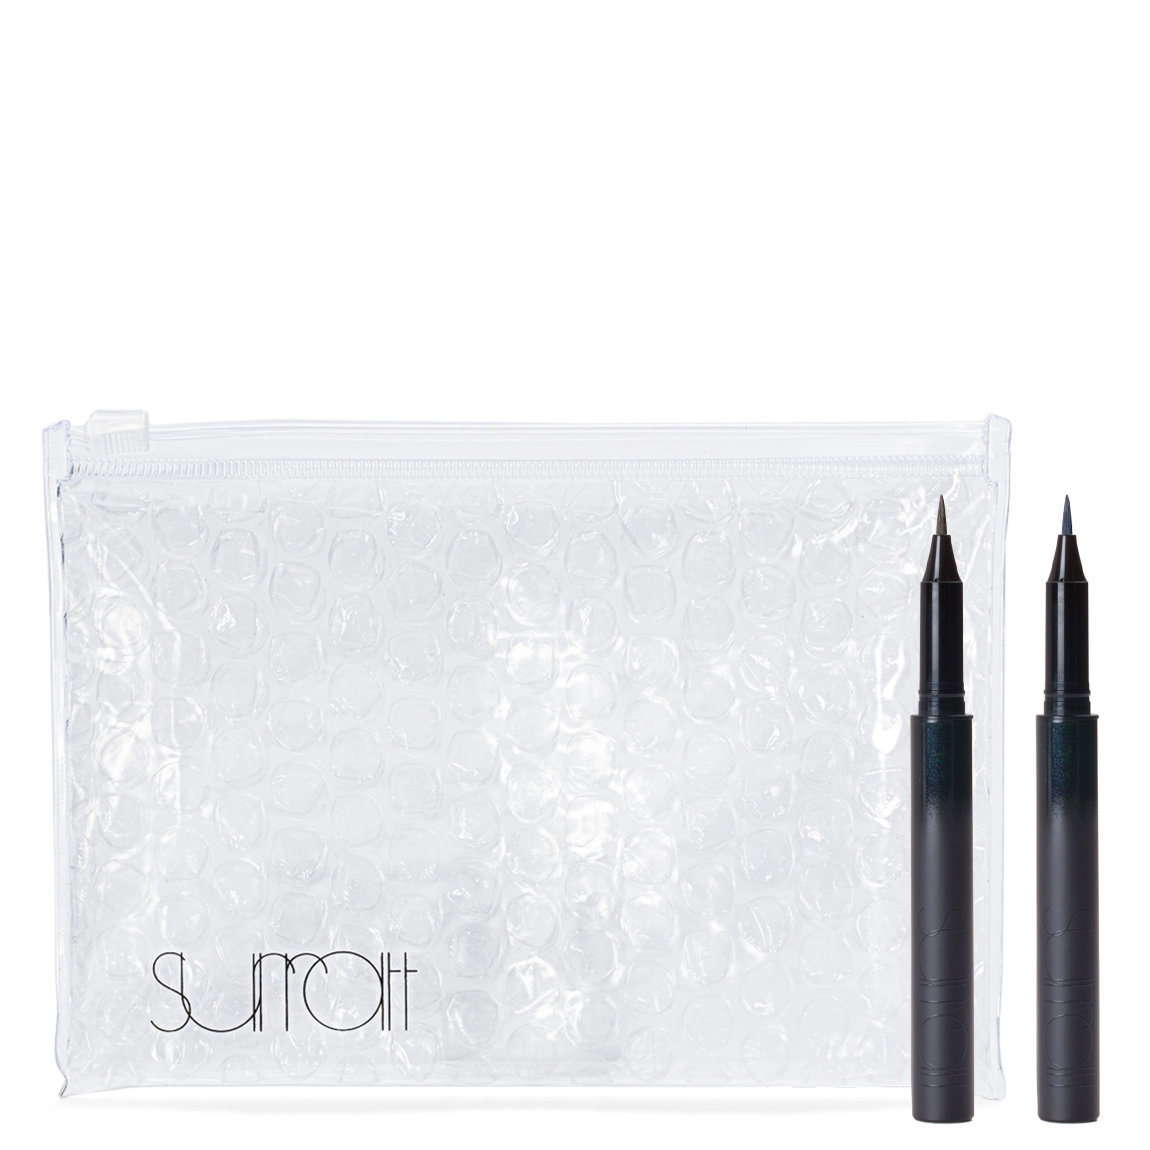 Surratt Beauty Auto-Graphique Liner Set Brun Riche & Indigo Japonais